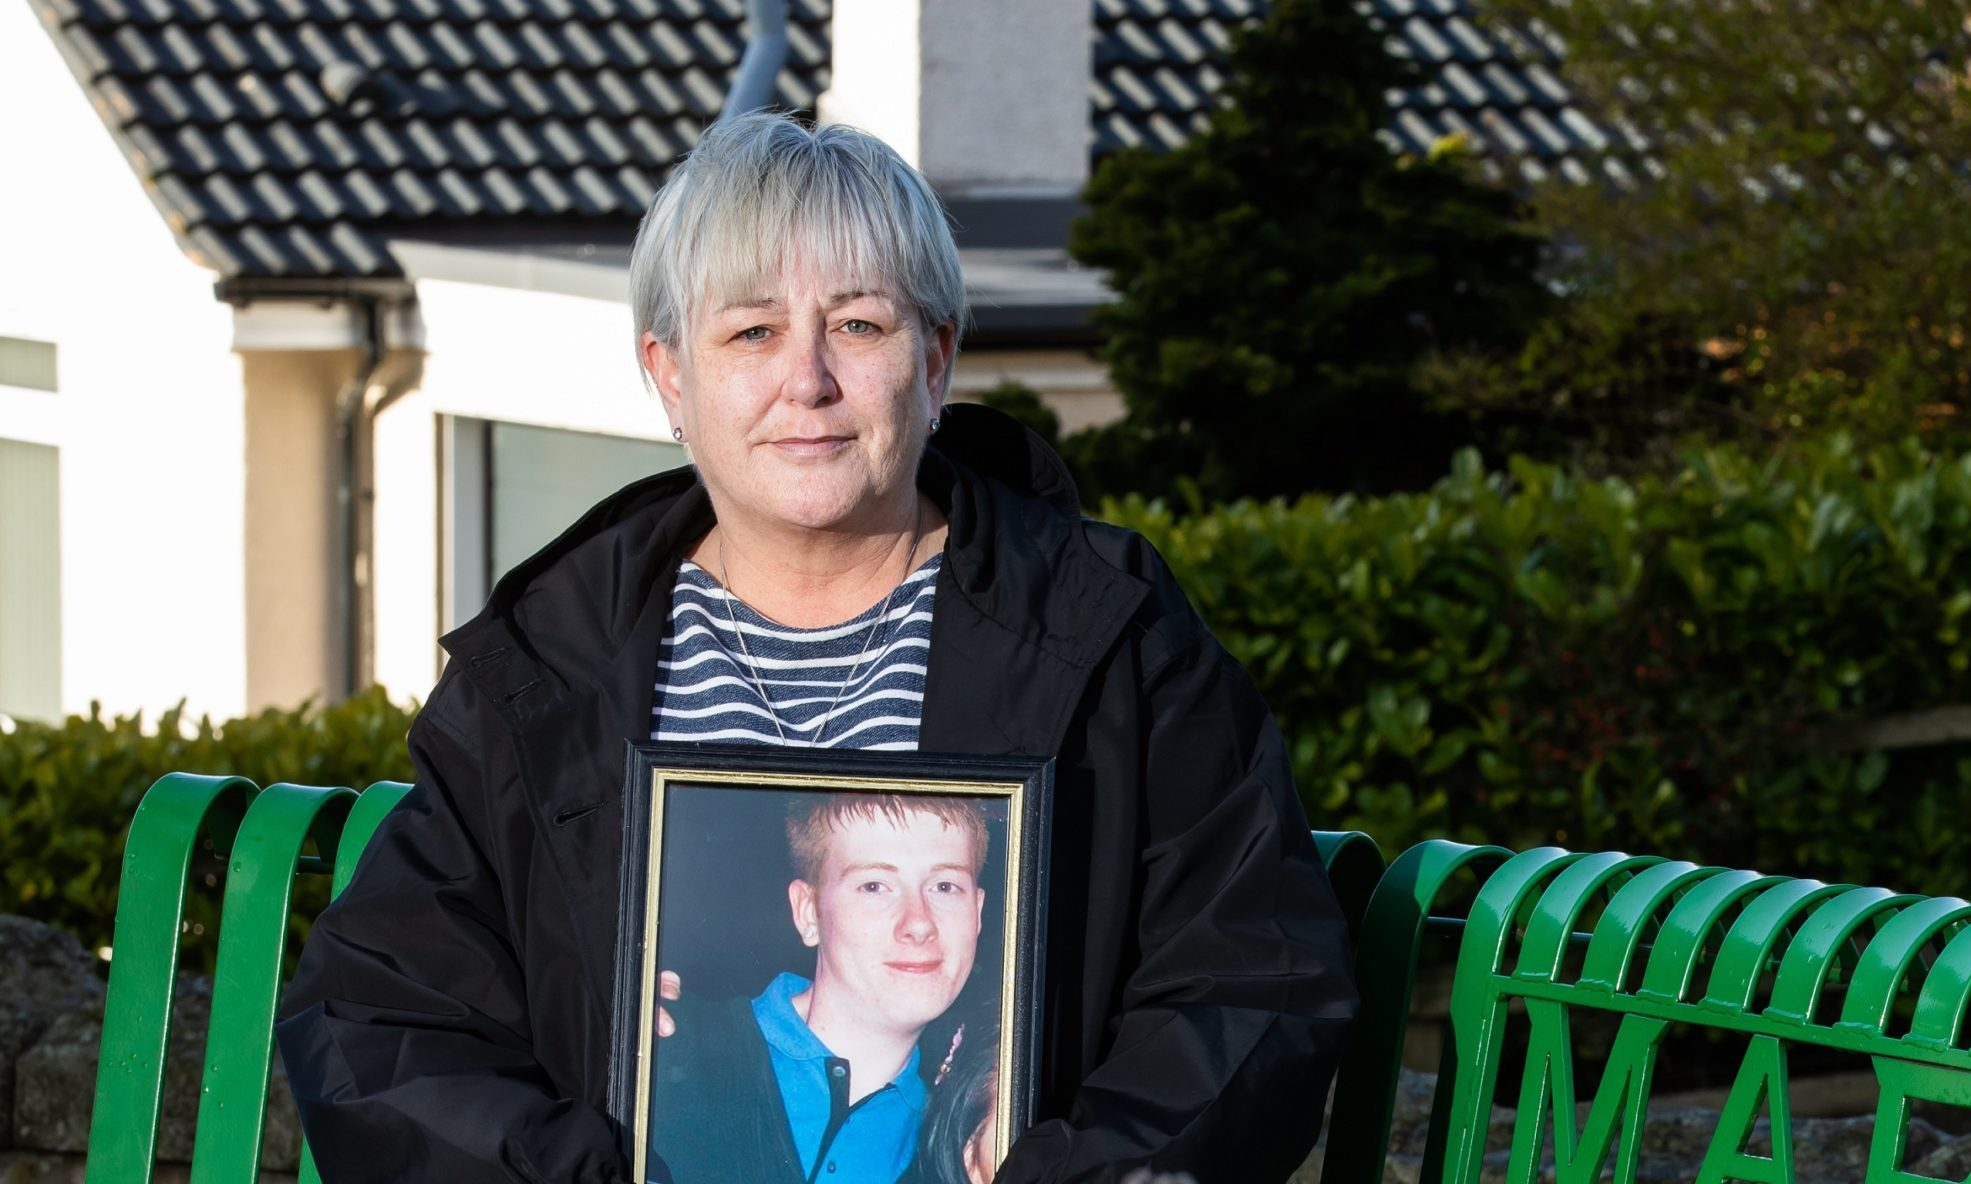 Dorothy-Anne Scott from Torphins who lost her son Mark in a car crash.